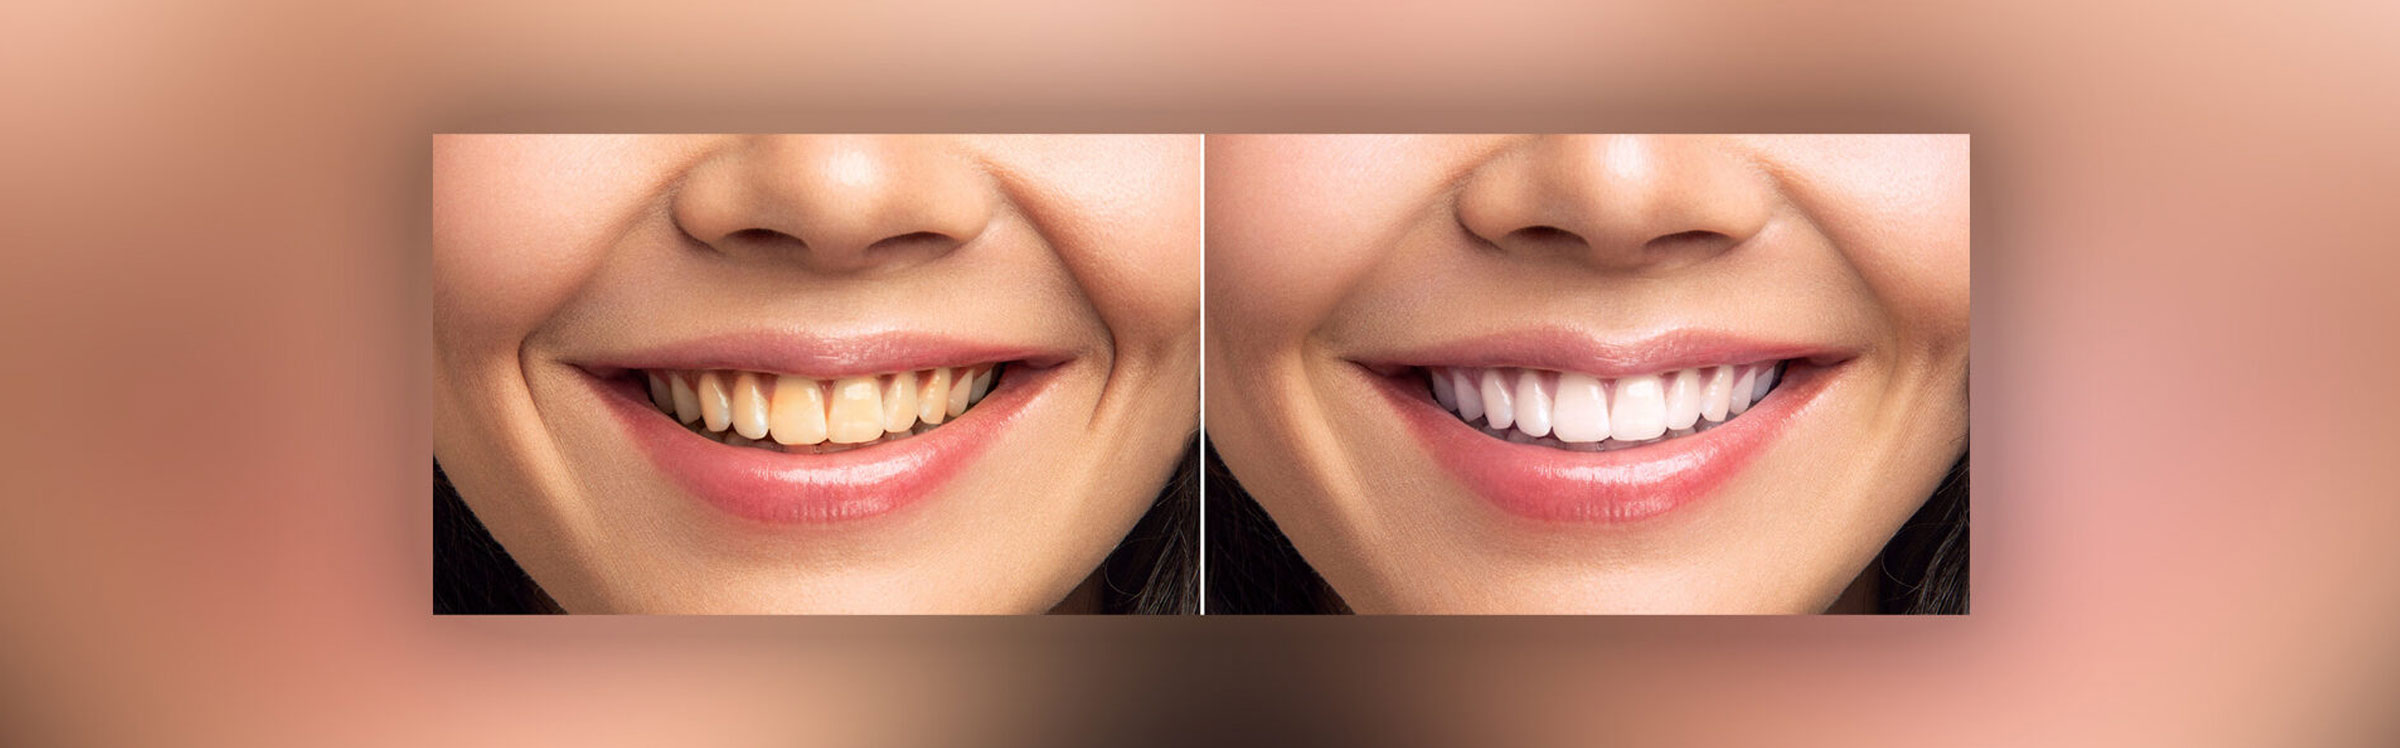 teeth-whitening-nz